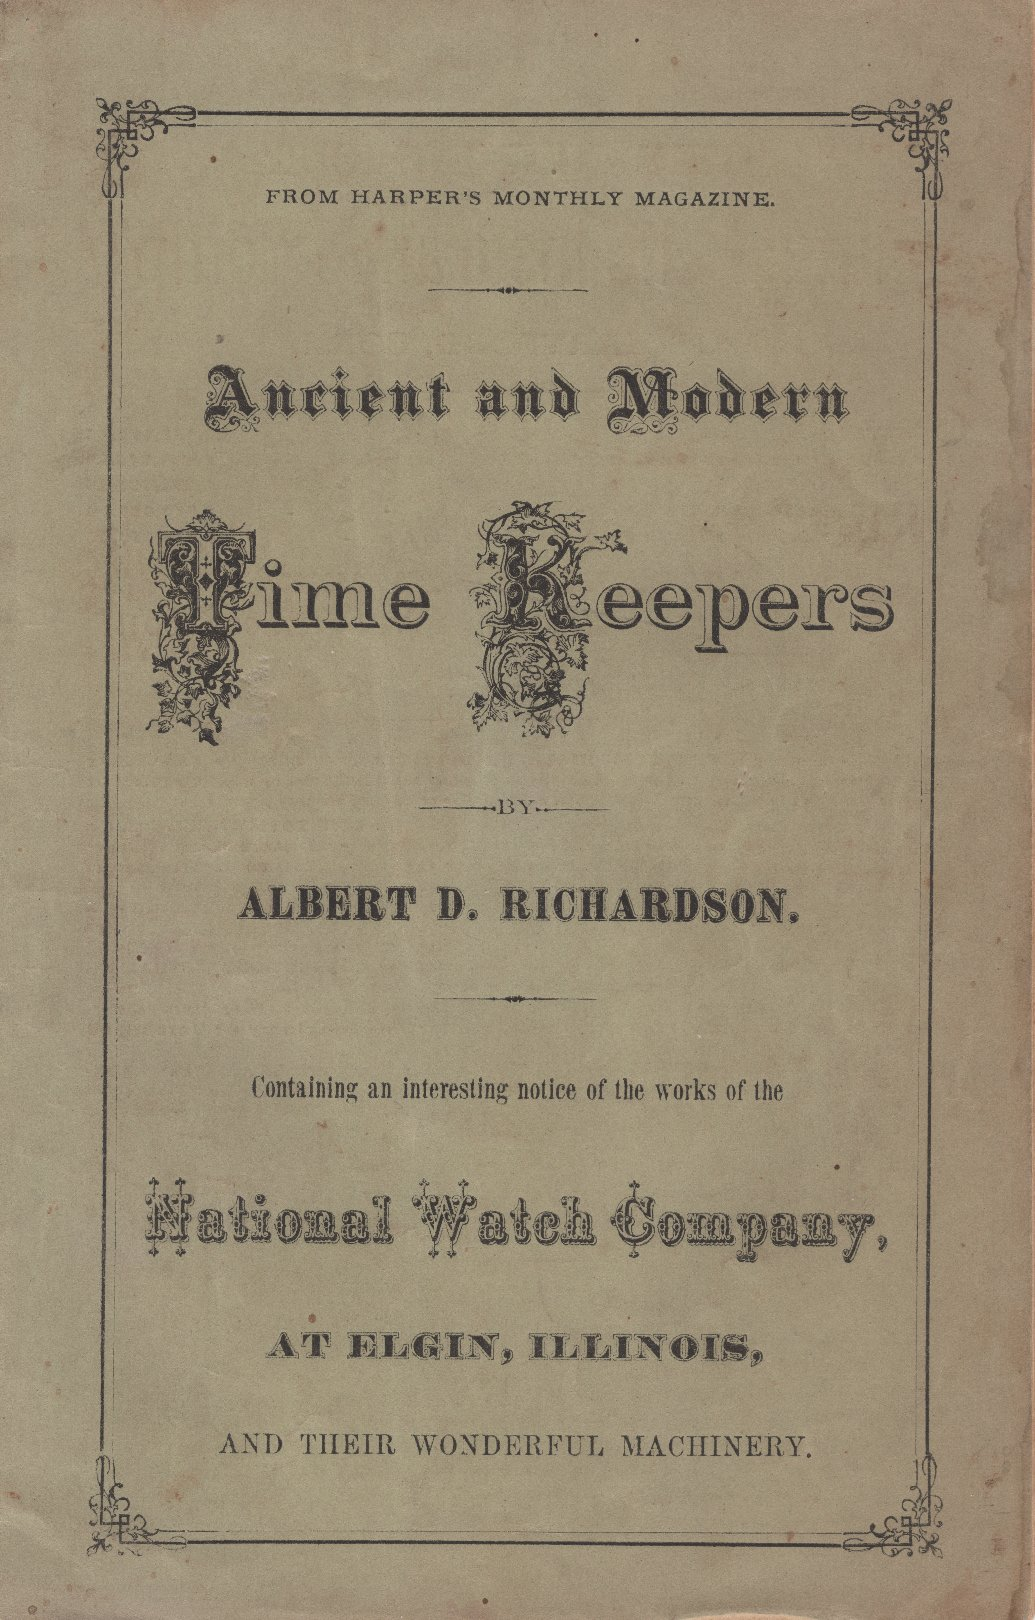 Ancient and Modern Time Keepers: Containing Interesting Notice of the Works of the National Watch Company at Elgin, Illinois and Their Wonderful Machinery (c.1869) Cover Image